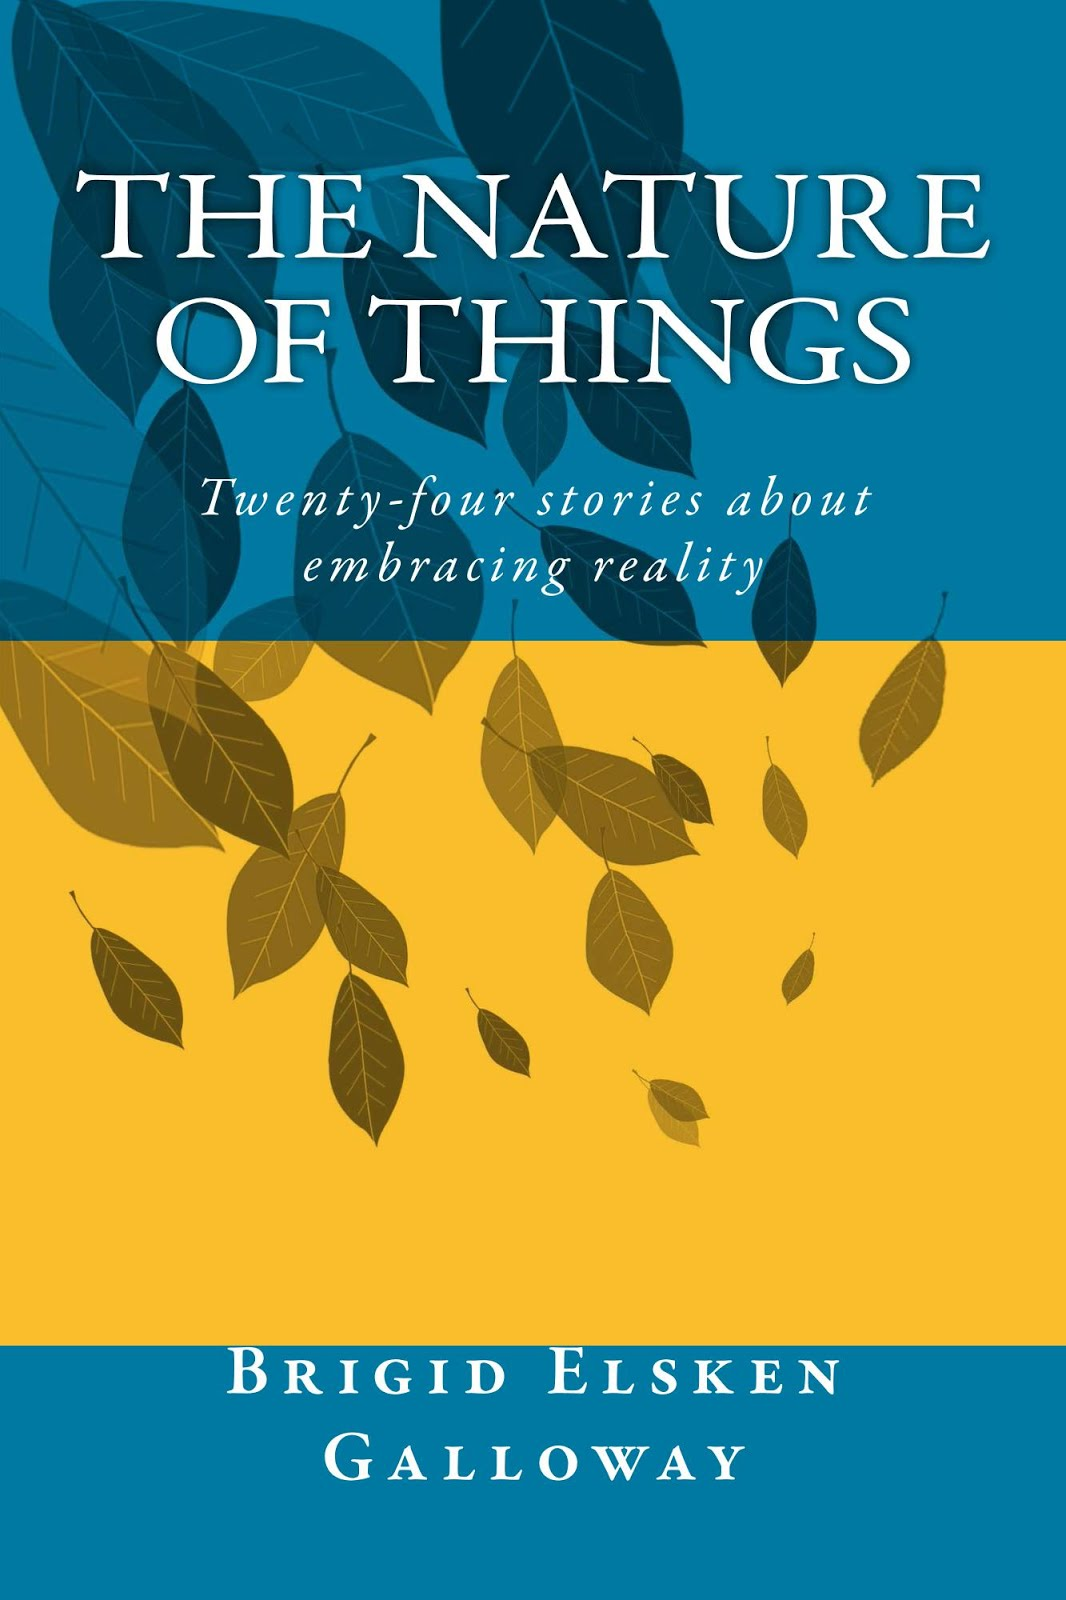 NOW AVAILABLE: THE NATURE OF THINGS by Brigid Elsken Galloway